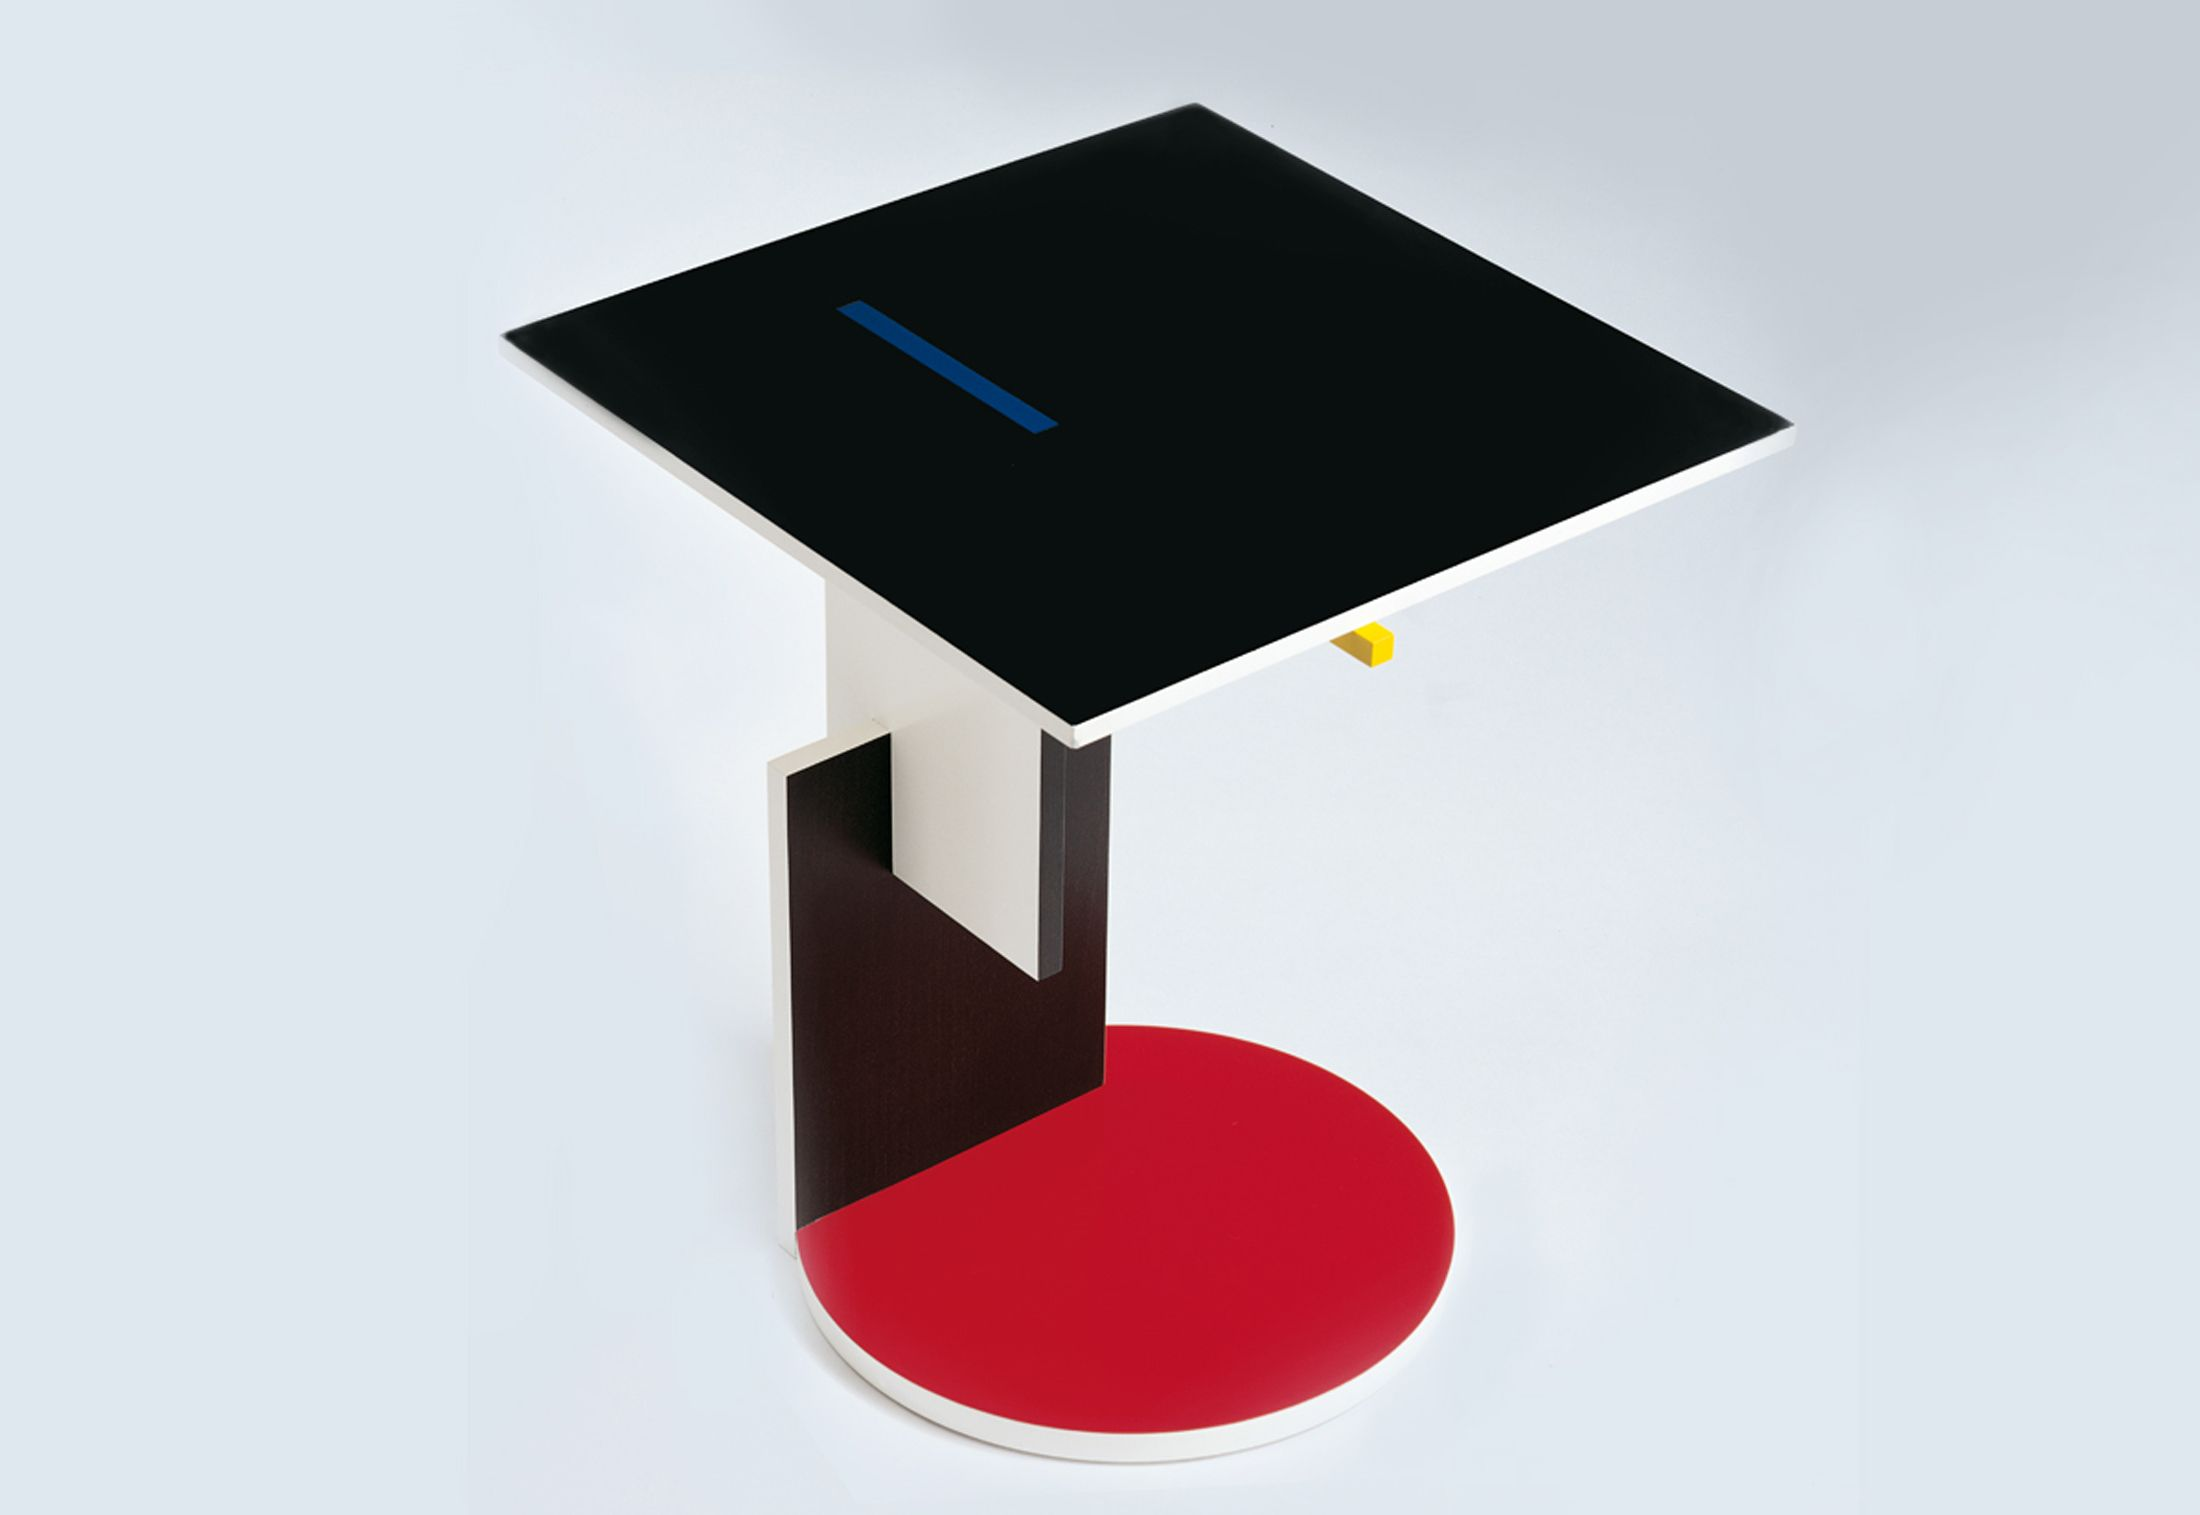 Domani com media catalog product c a cassina schroeder1 side table jpg downloader - The Cassina Schroeder 1 Table Designed By Gerrit T Rietveld Carries On The Bright Coloured Theme First Seen On The Cassina Red And Blue Chair